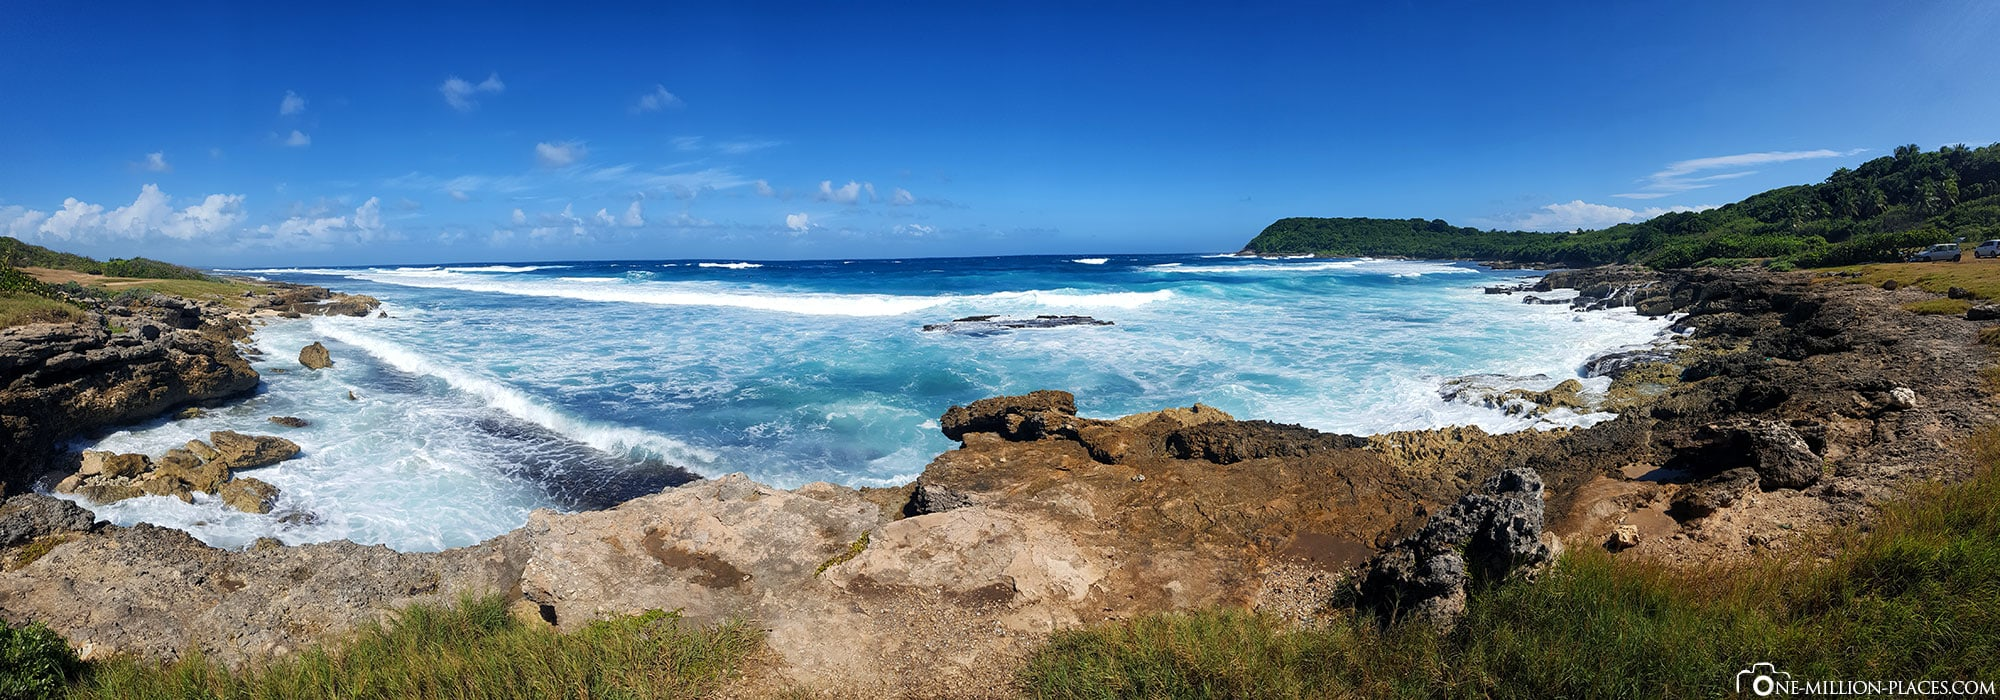 Panoramic view of the Atlantic coast, Guadeloupe, sights, island tour, On your own, travel report